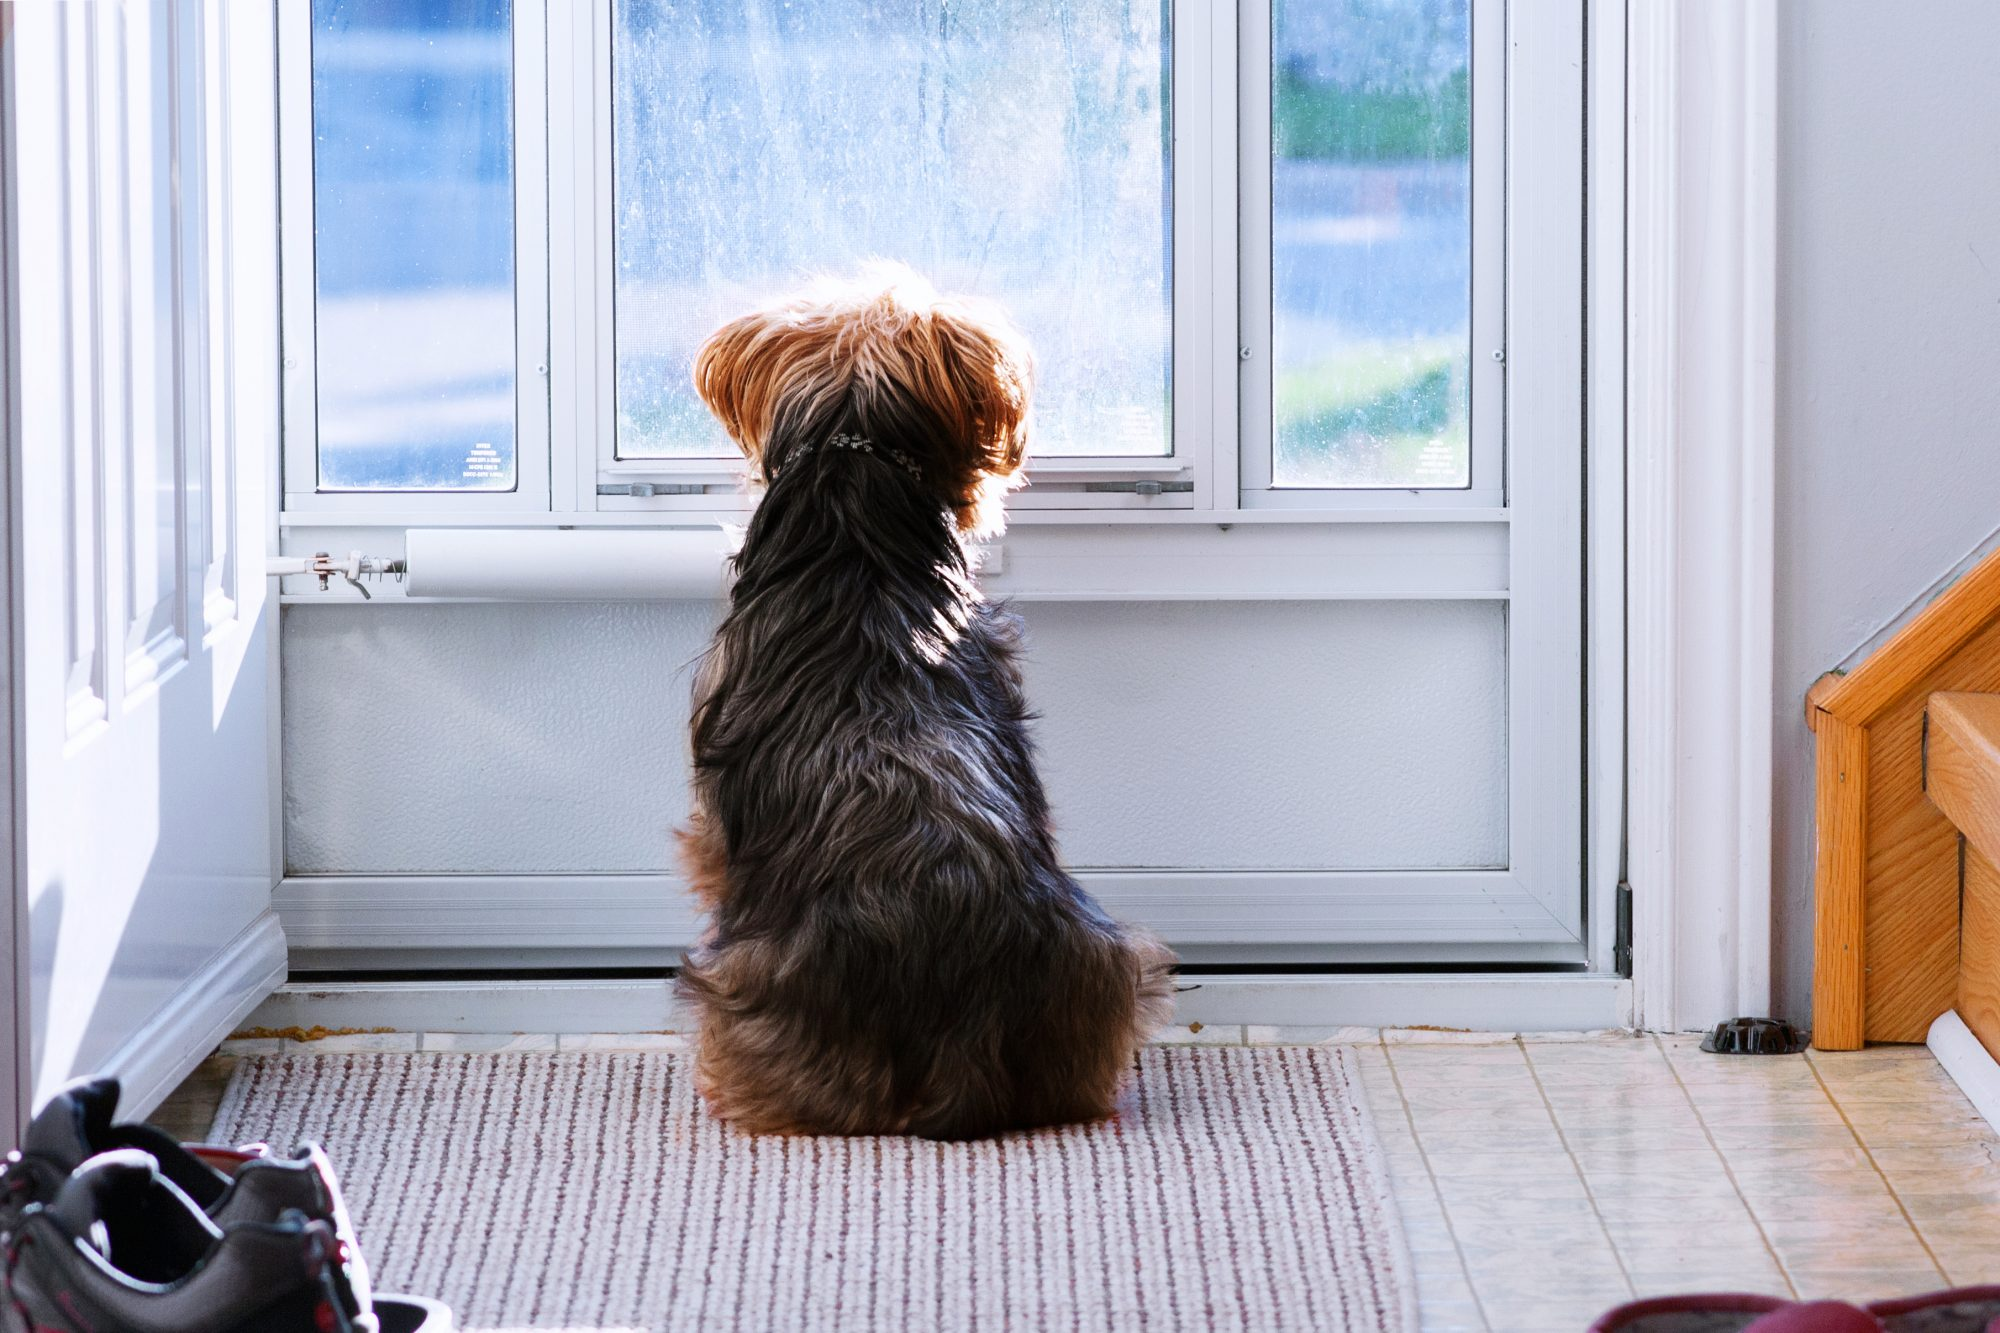 dog waiting for owner by door